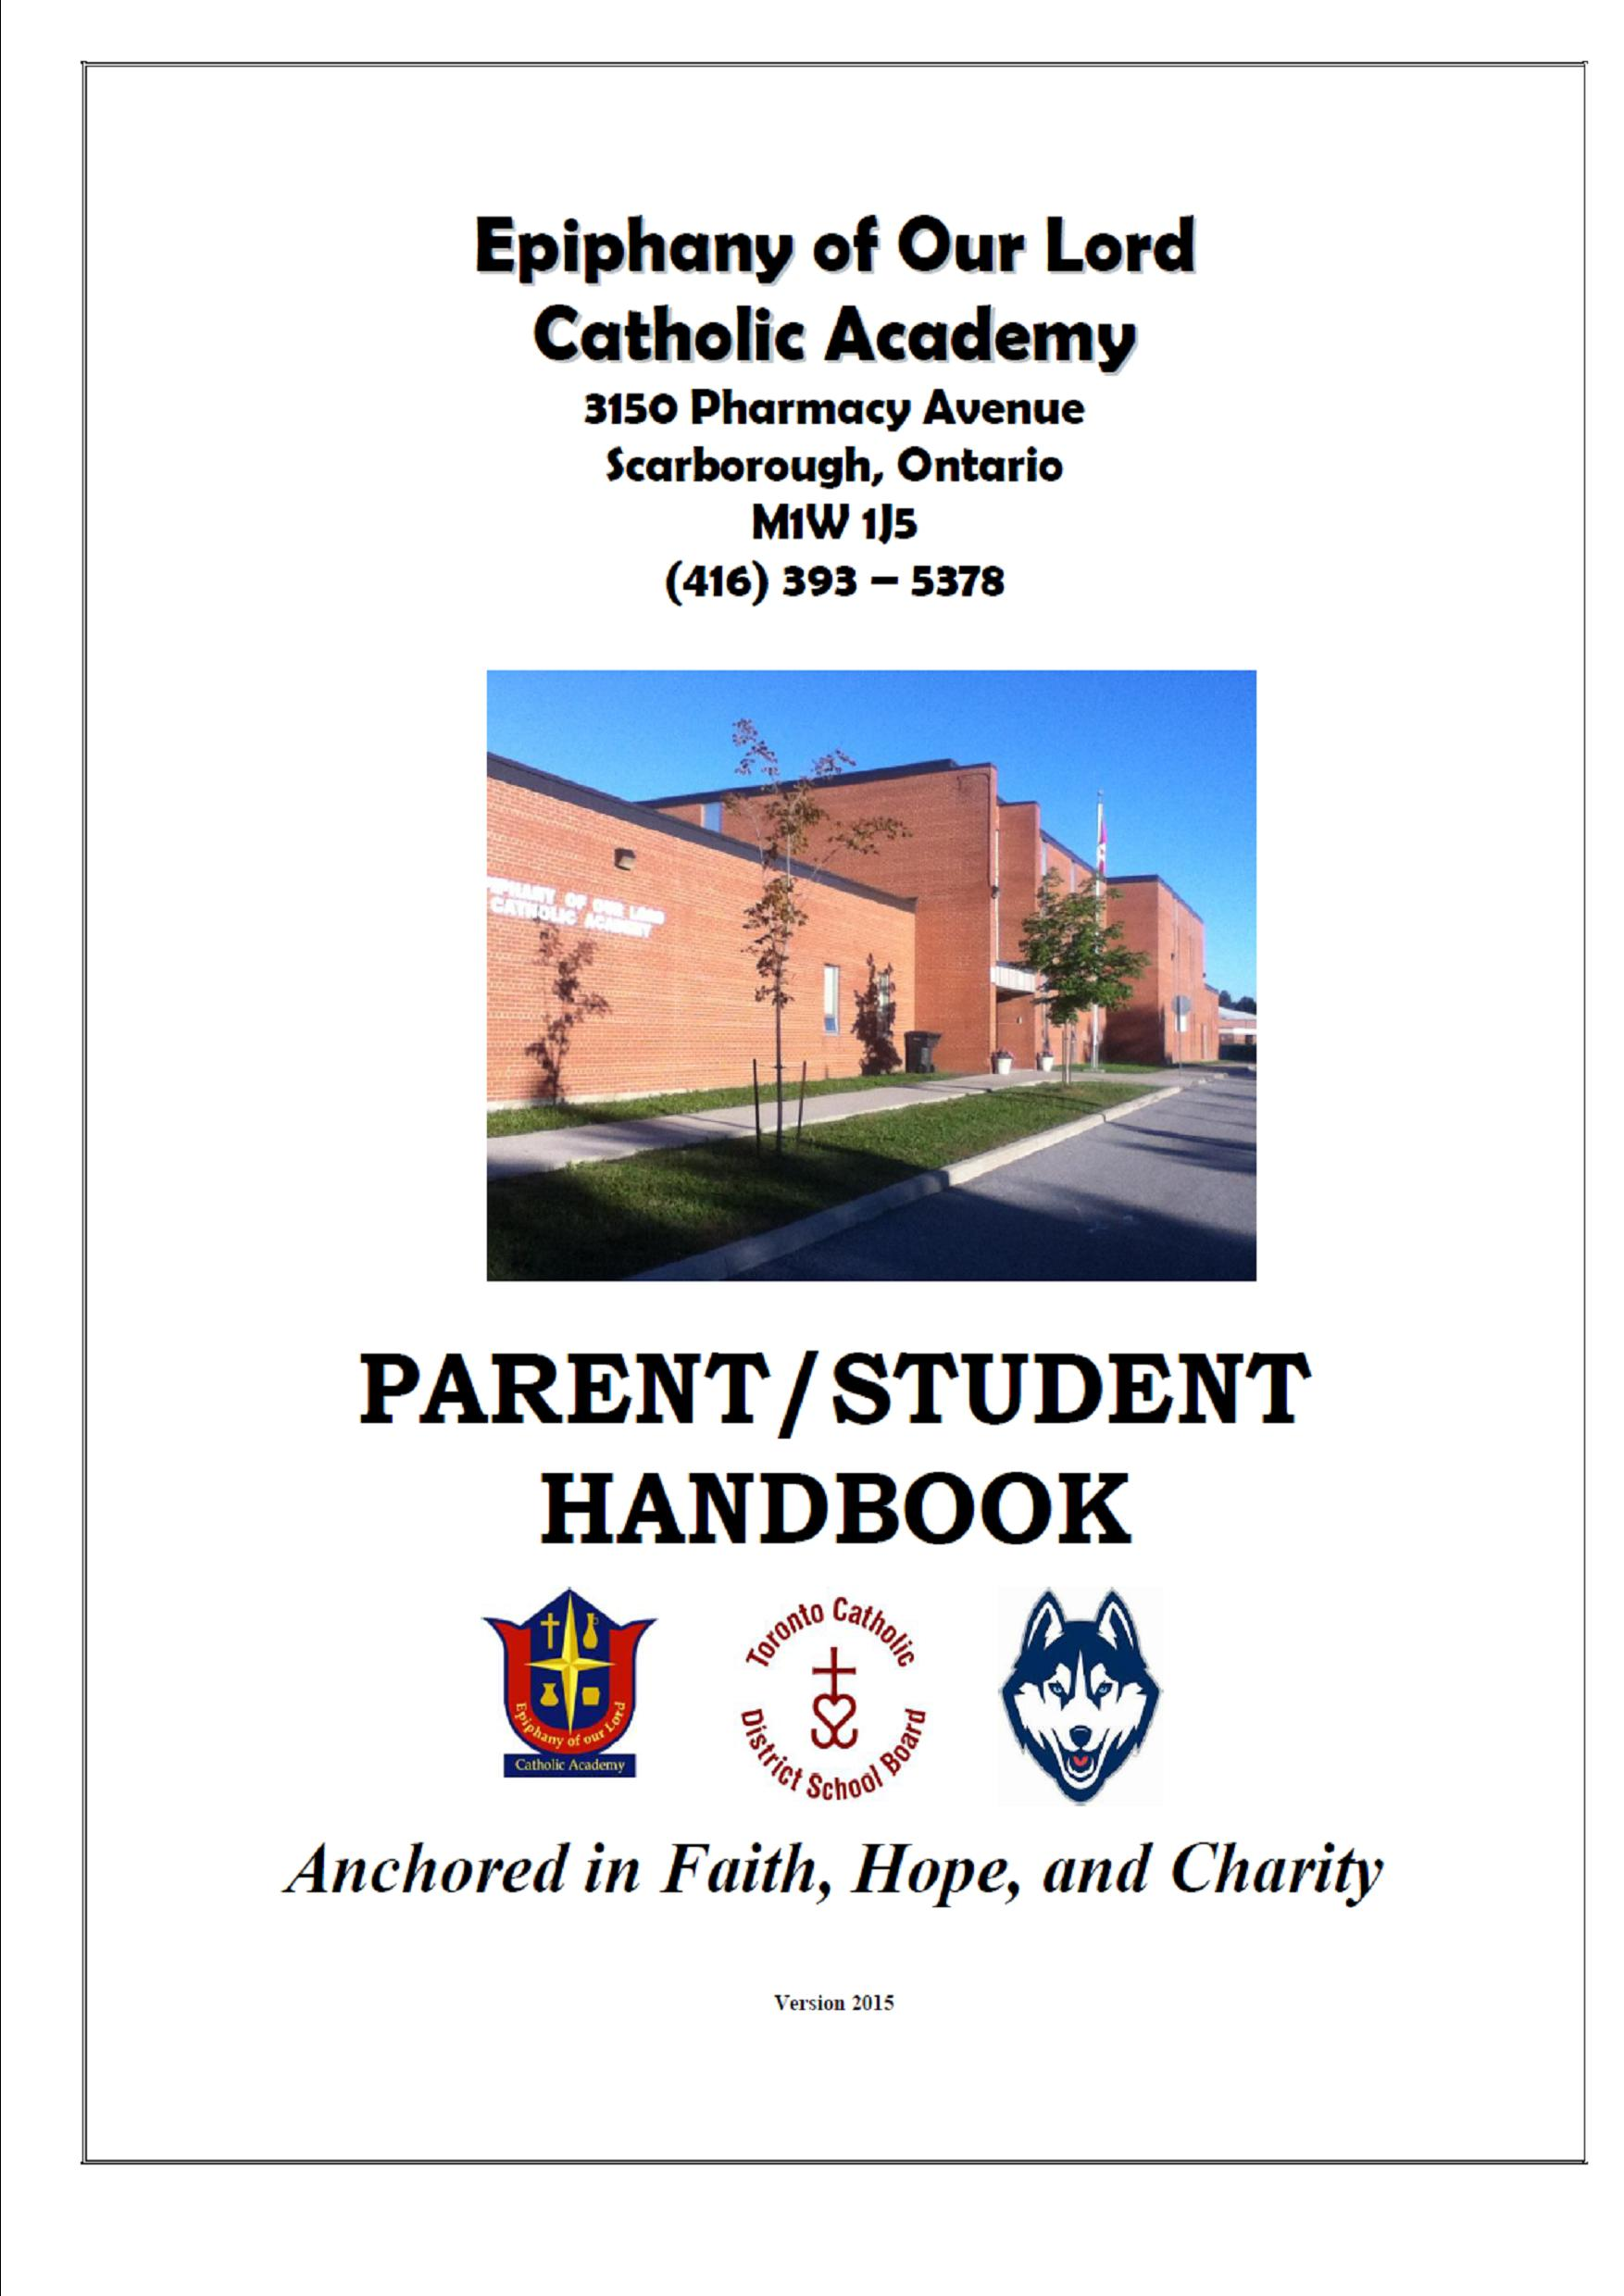 Parent Handbook cover.jpg